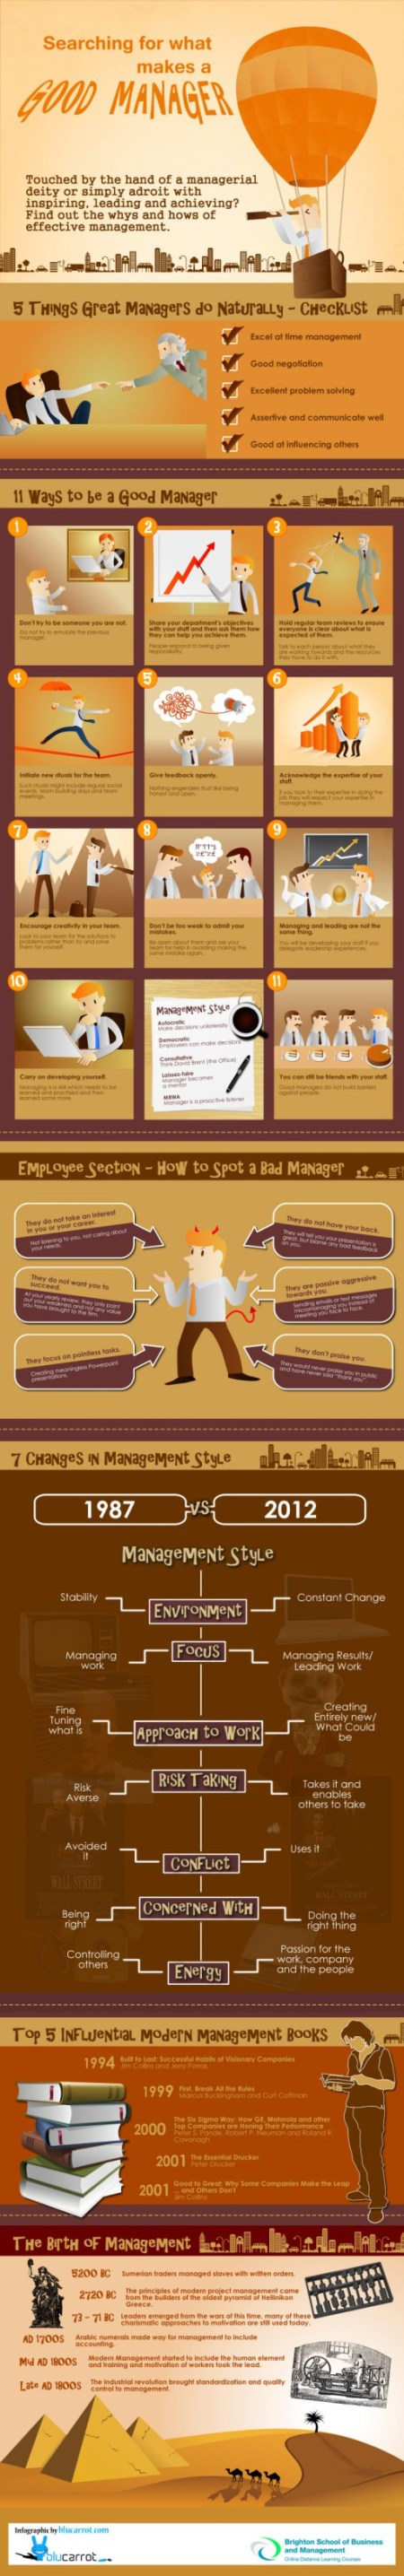 ManagerInfoGraph